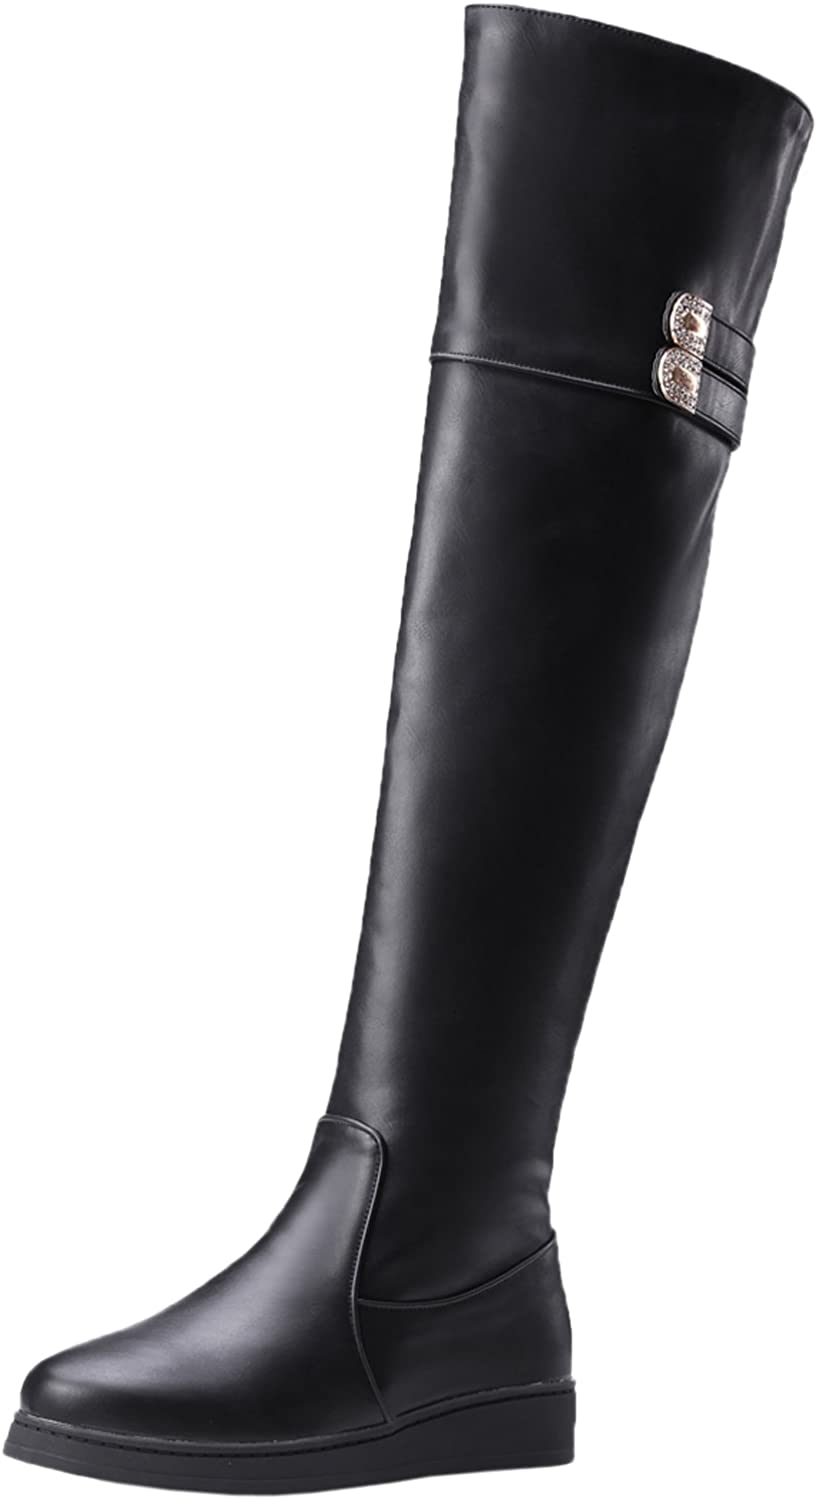 BIGTREE Thigh High Boots Women Flat Shiny Rhinestones Fall Winter Warm Black Over The Knee Boots